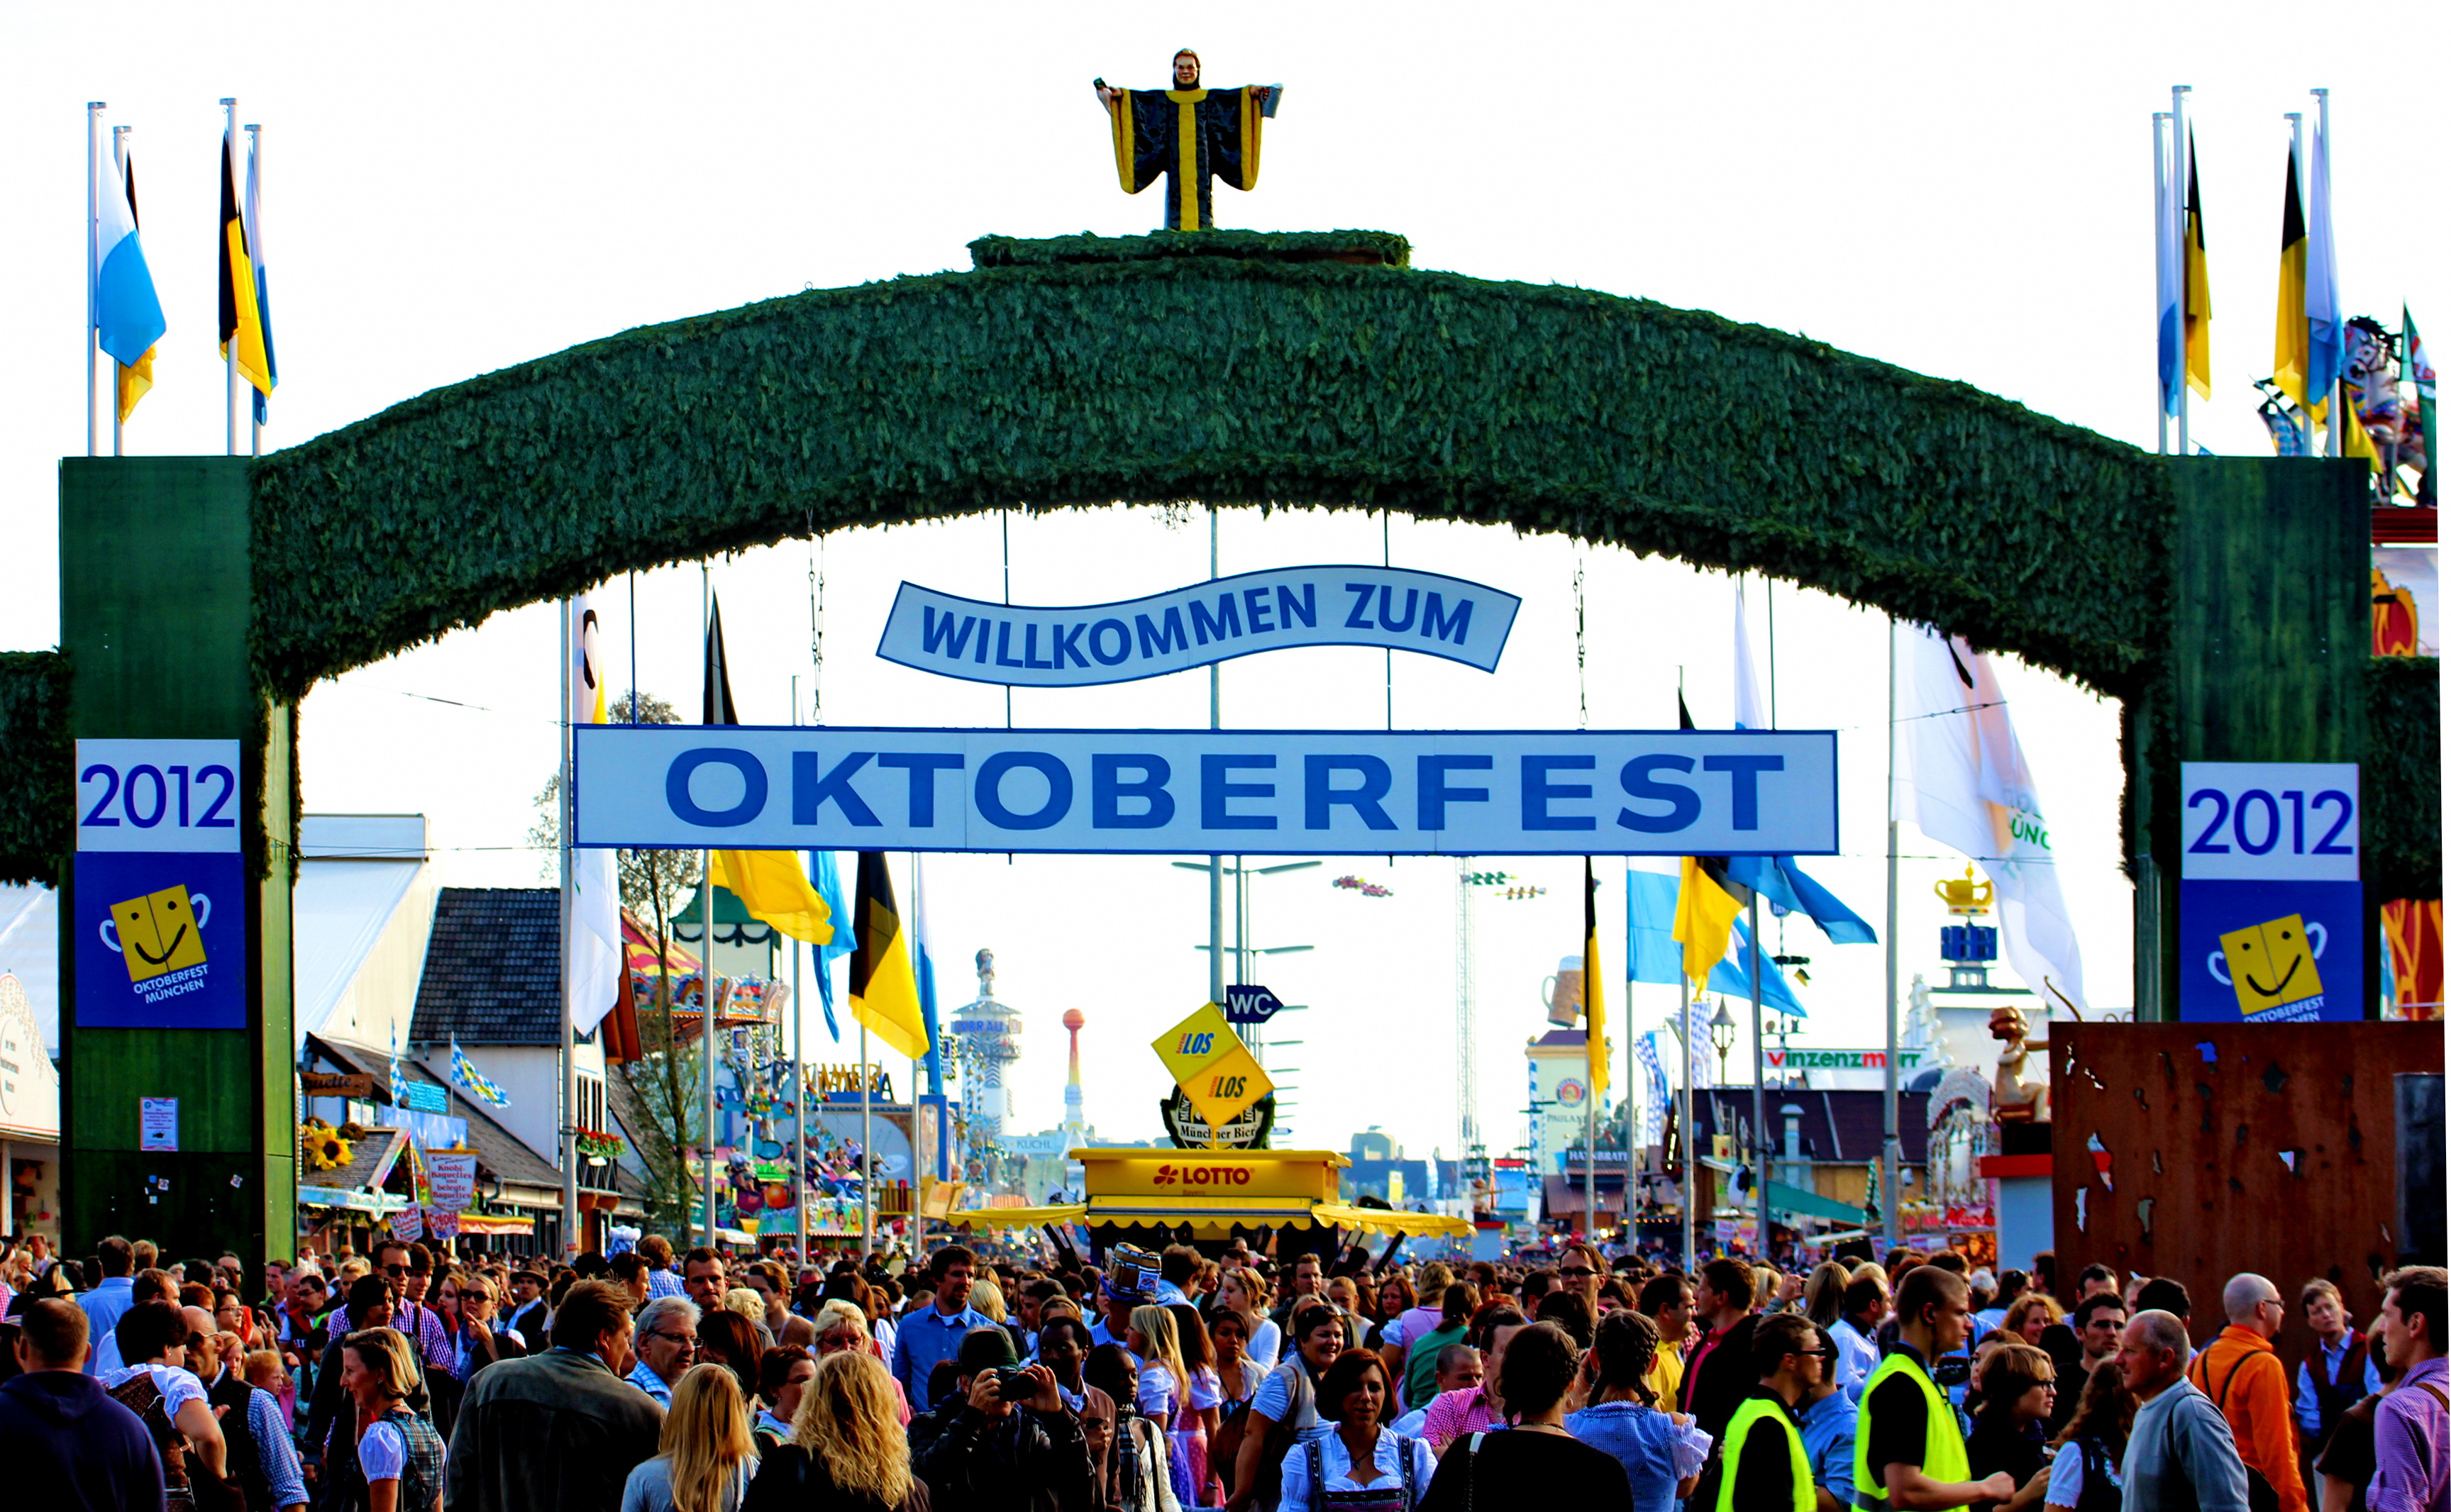 Image of entrance to Oktoberfest